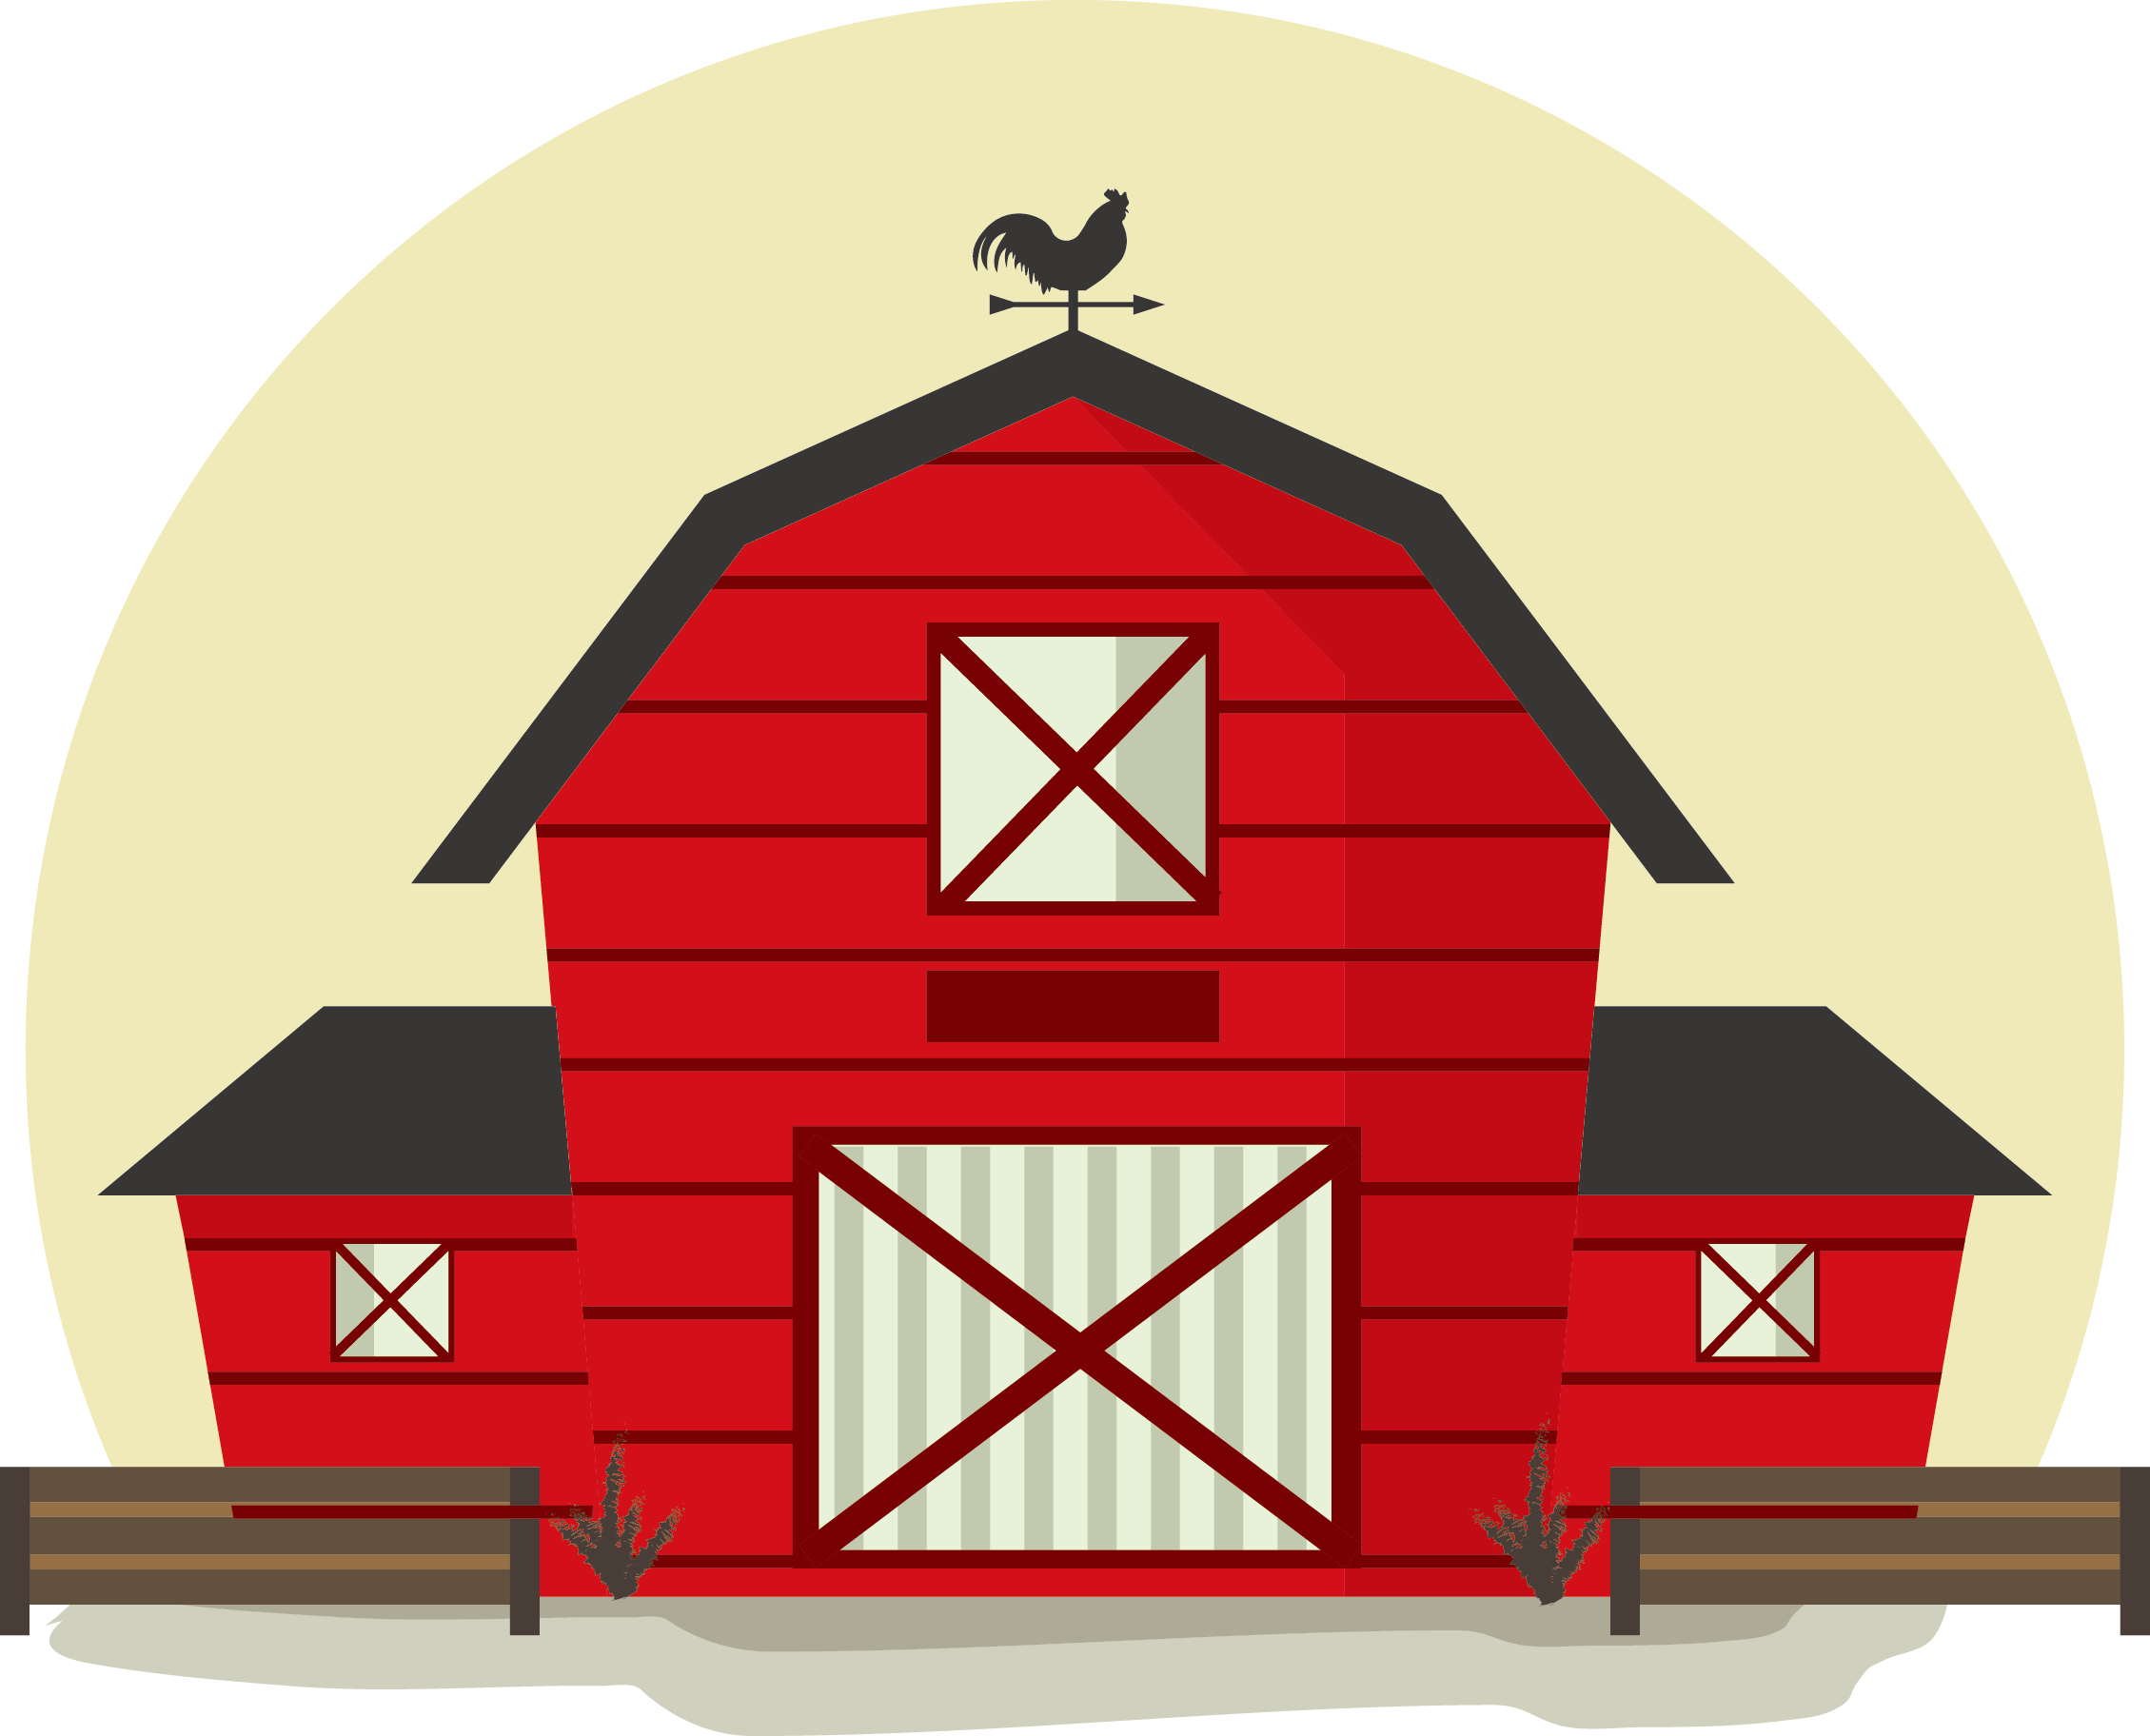 Clipart barn different building. Philippines cartoon illustration red